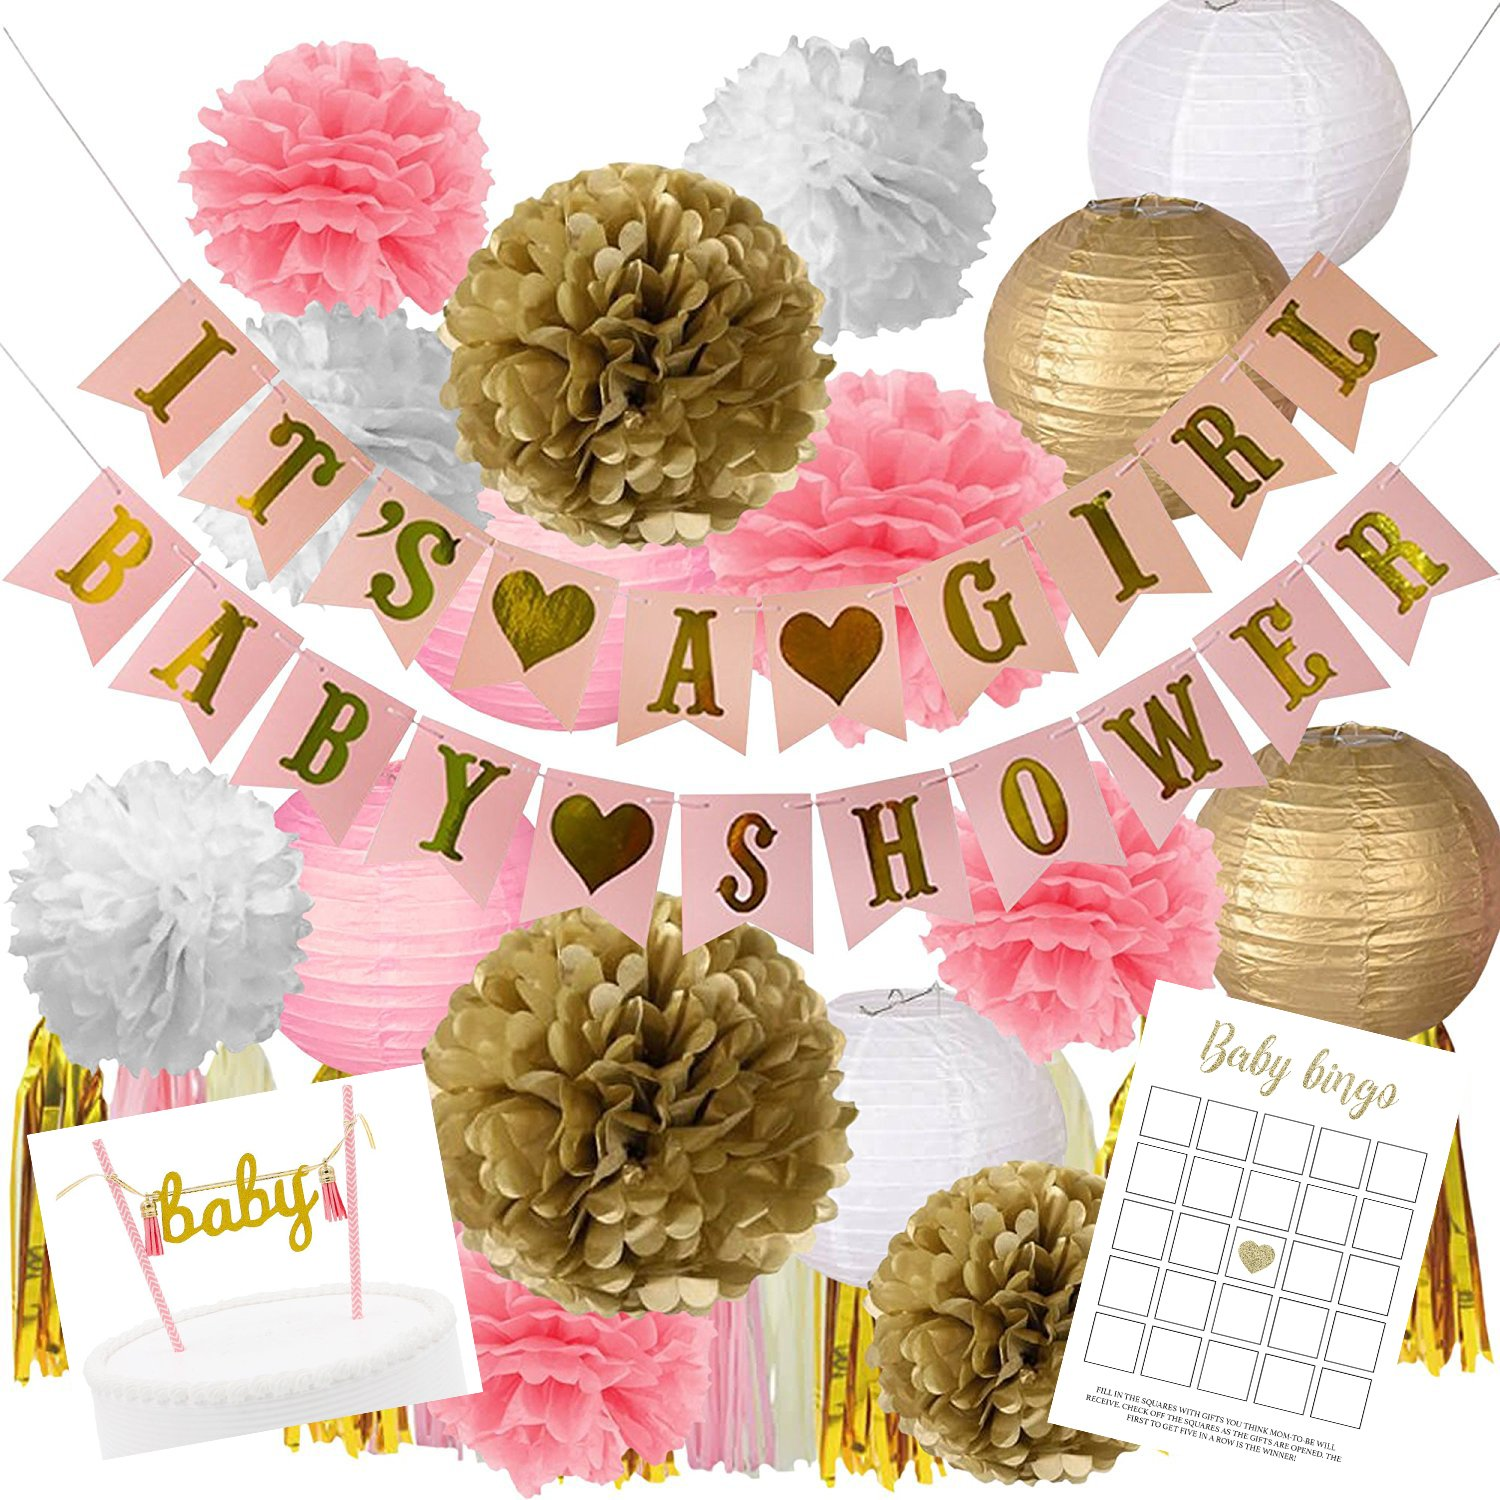 Pink And Gold Baby Shower Decorations For Girl | BONUS Baby Bingo and Pink Cake Topper | It's A Girl & Baby Shower Garland Banner, Paper Lanterns, Tassels, Baby Shower Game, Pom Poms, Honeycomb Balls by LTM Commodities